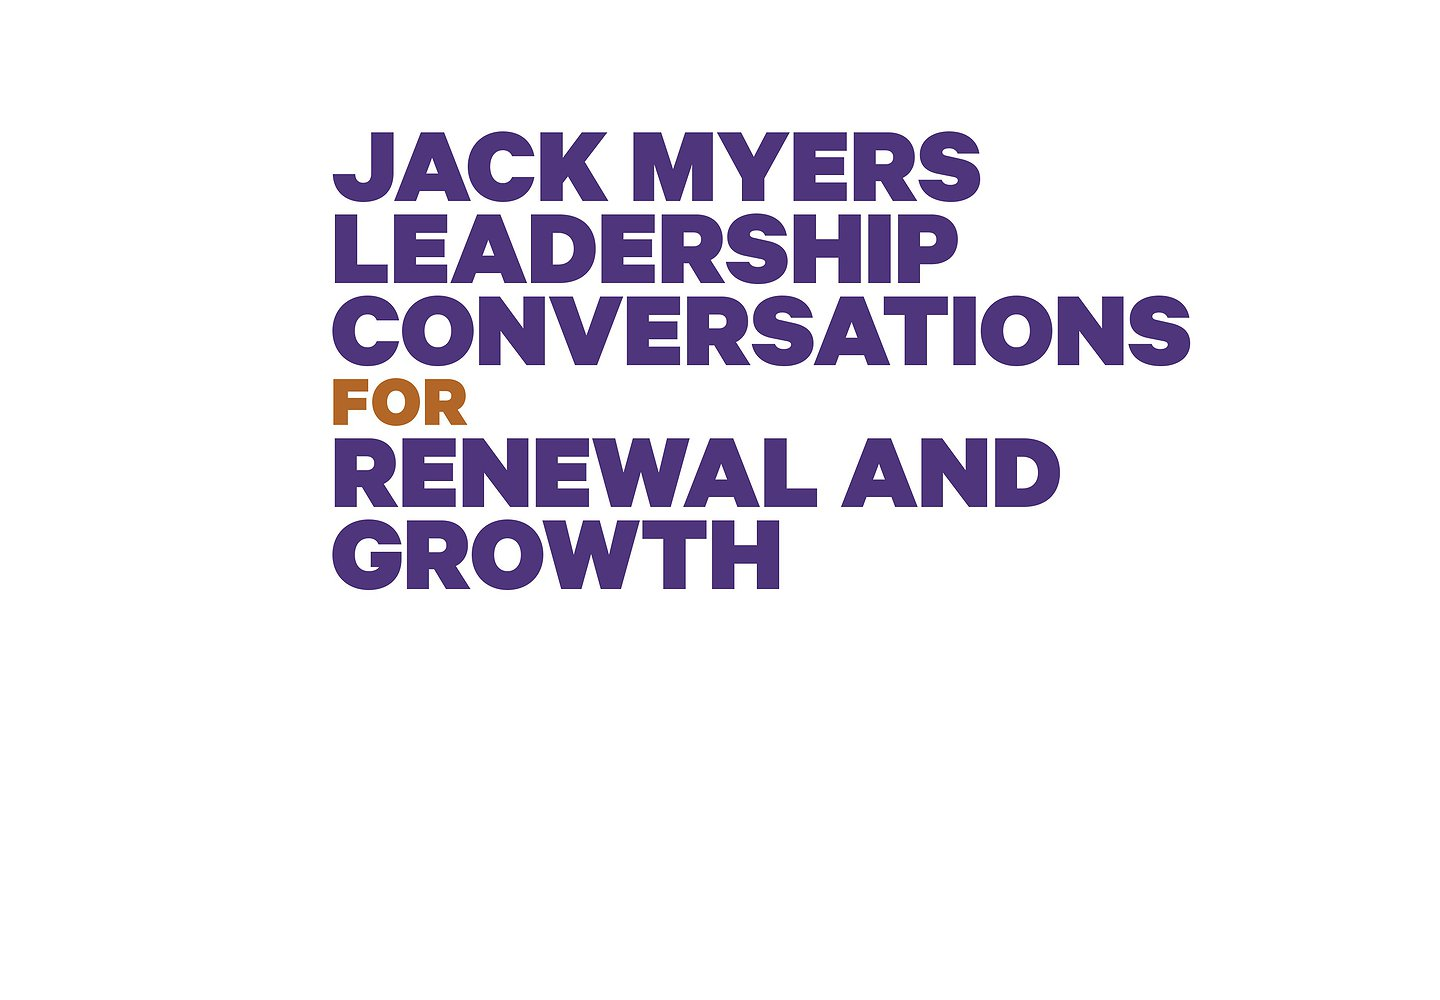 VIEW ON-DEMAND AND REGISTER FOR UPCOMING CONVERSATIONS